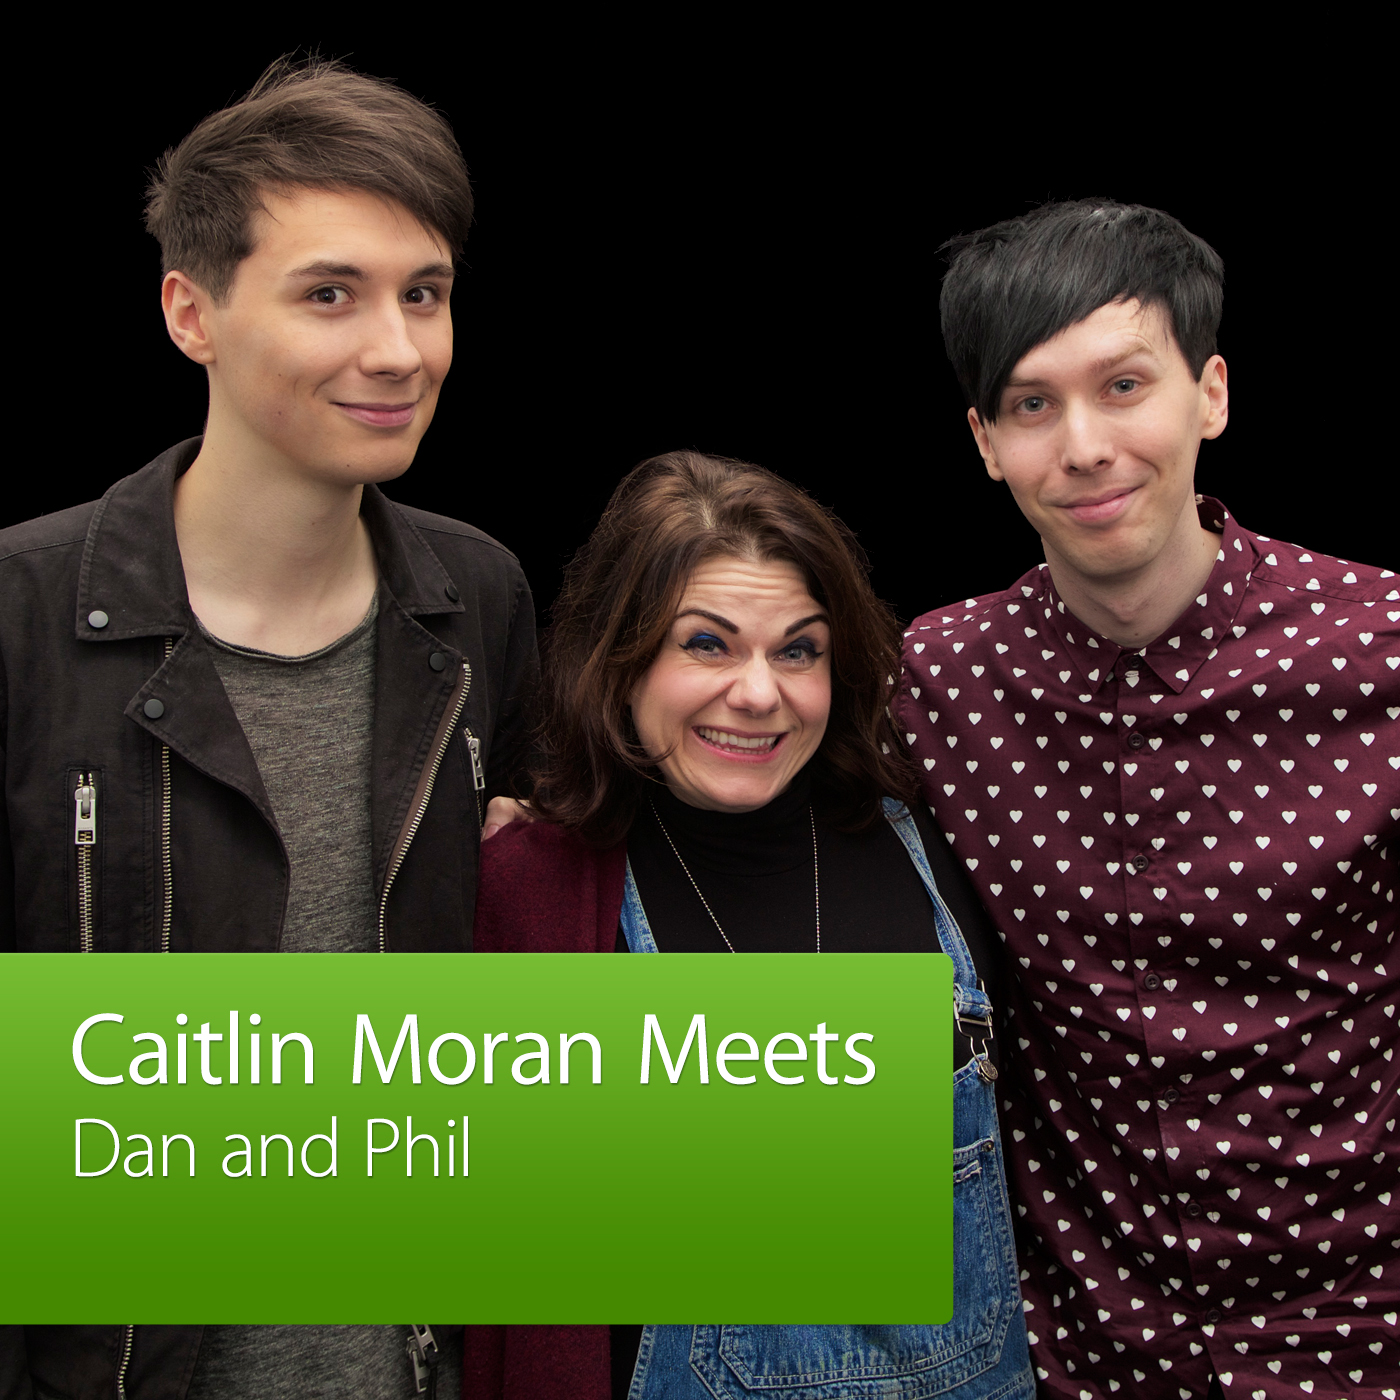 Caitlin Moran Meets Dan and Phil